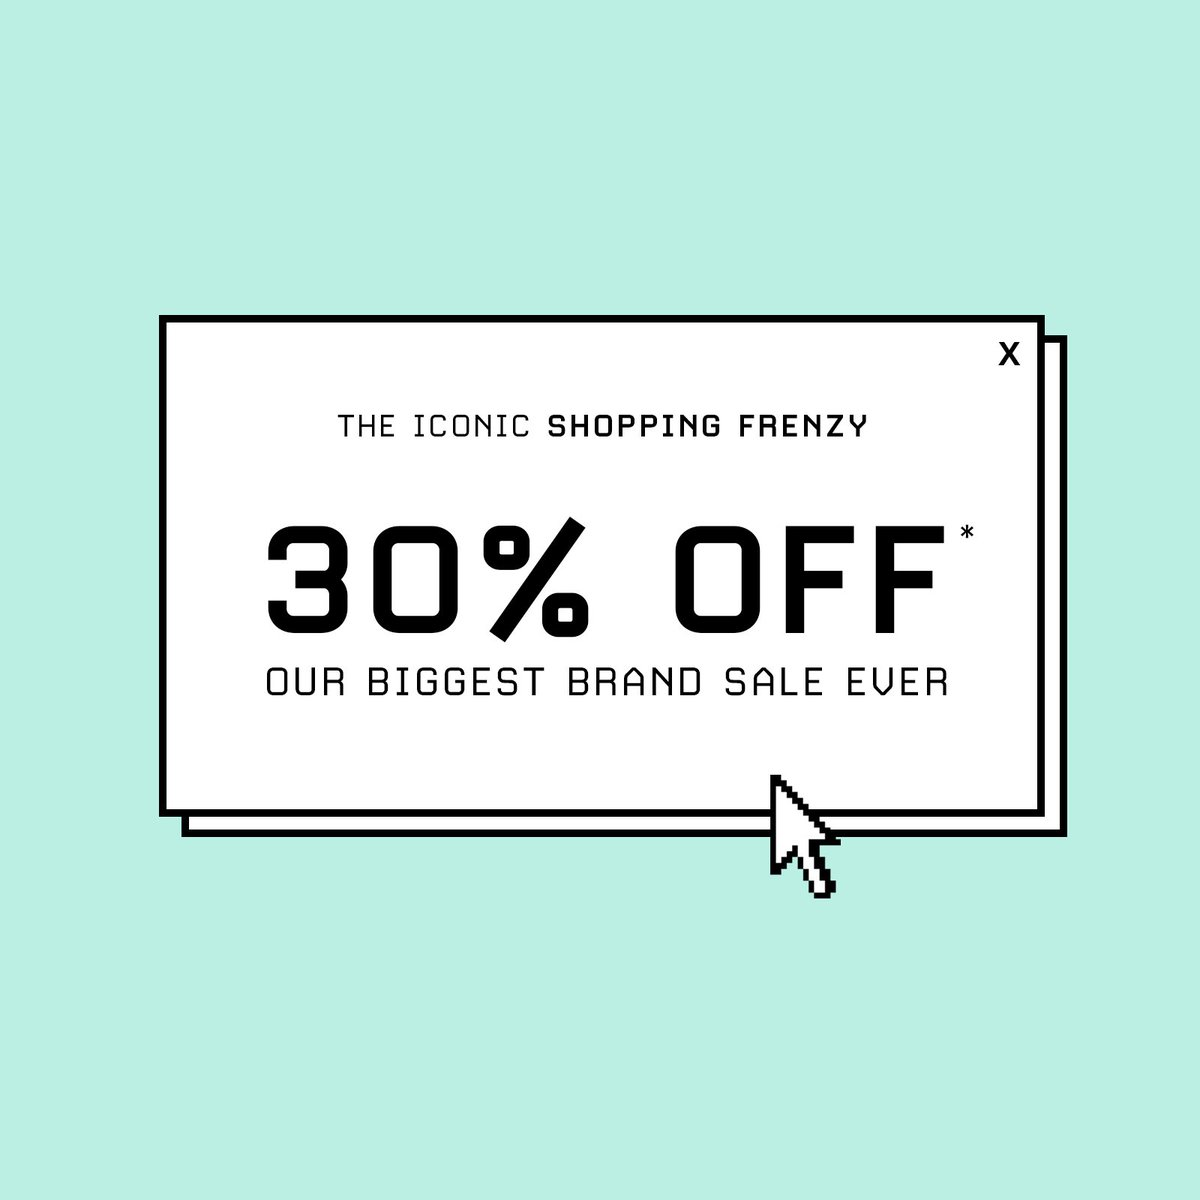 THE ICONIC SHOPPING FRENZY: 30% OFF*! 👏 Our biggest brand sale ever.   Shop Sale > https://t.co/Fm7conJ62z  *Ends 11:59PM AEST on 23.05.19. Selected styles and colours listed. Subject to terms and conditions. #shoppingfrenzy #theiconic https://t.co/qclwzBaOiB